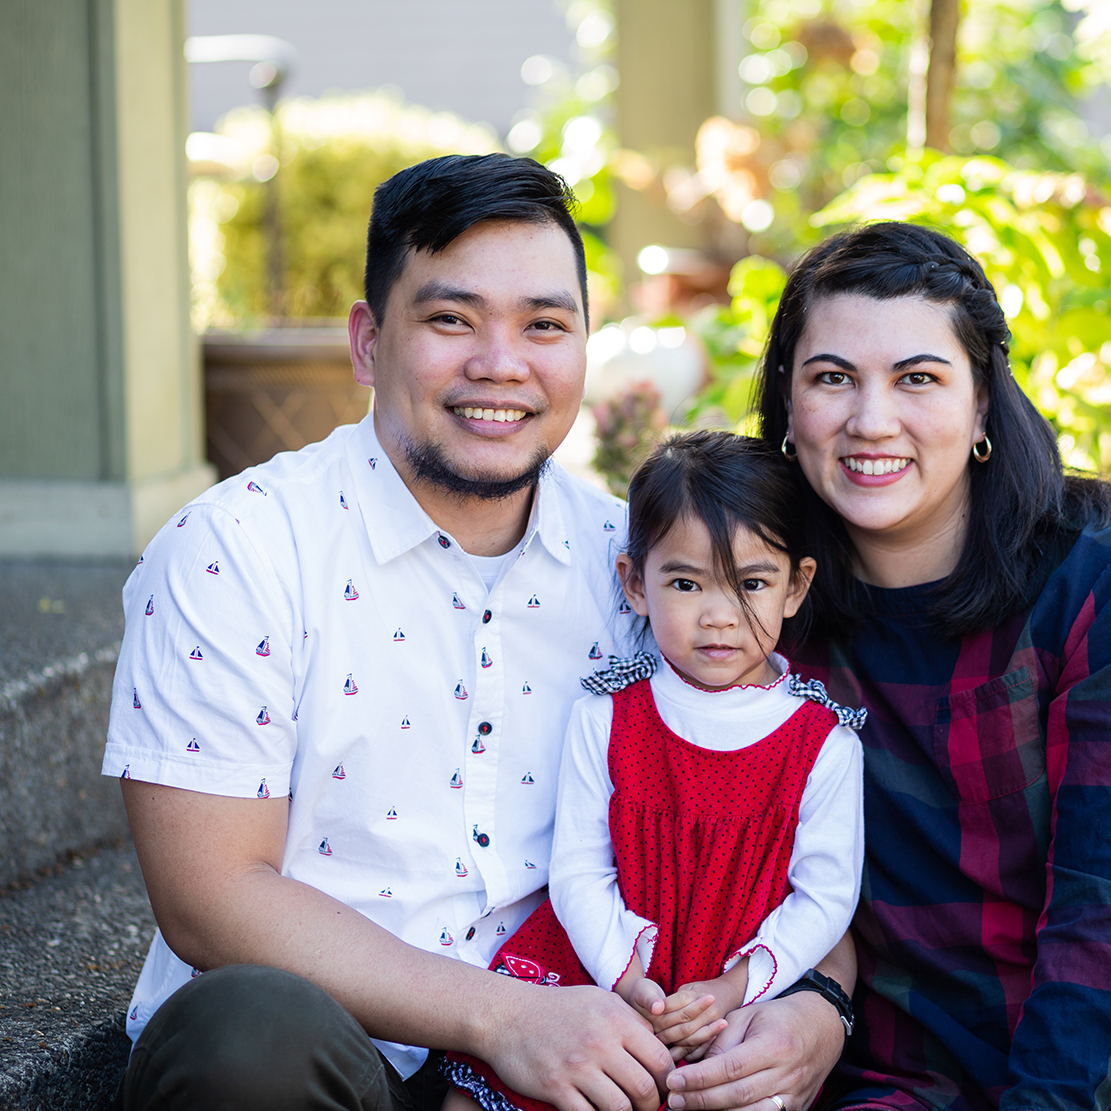 Birch Community Services: Offering a Hand Up to Help Families Escape Poverty